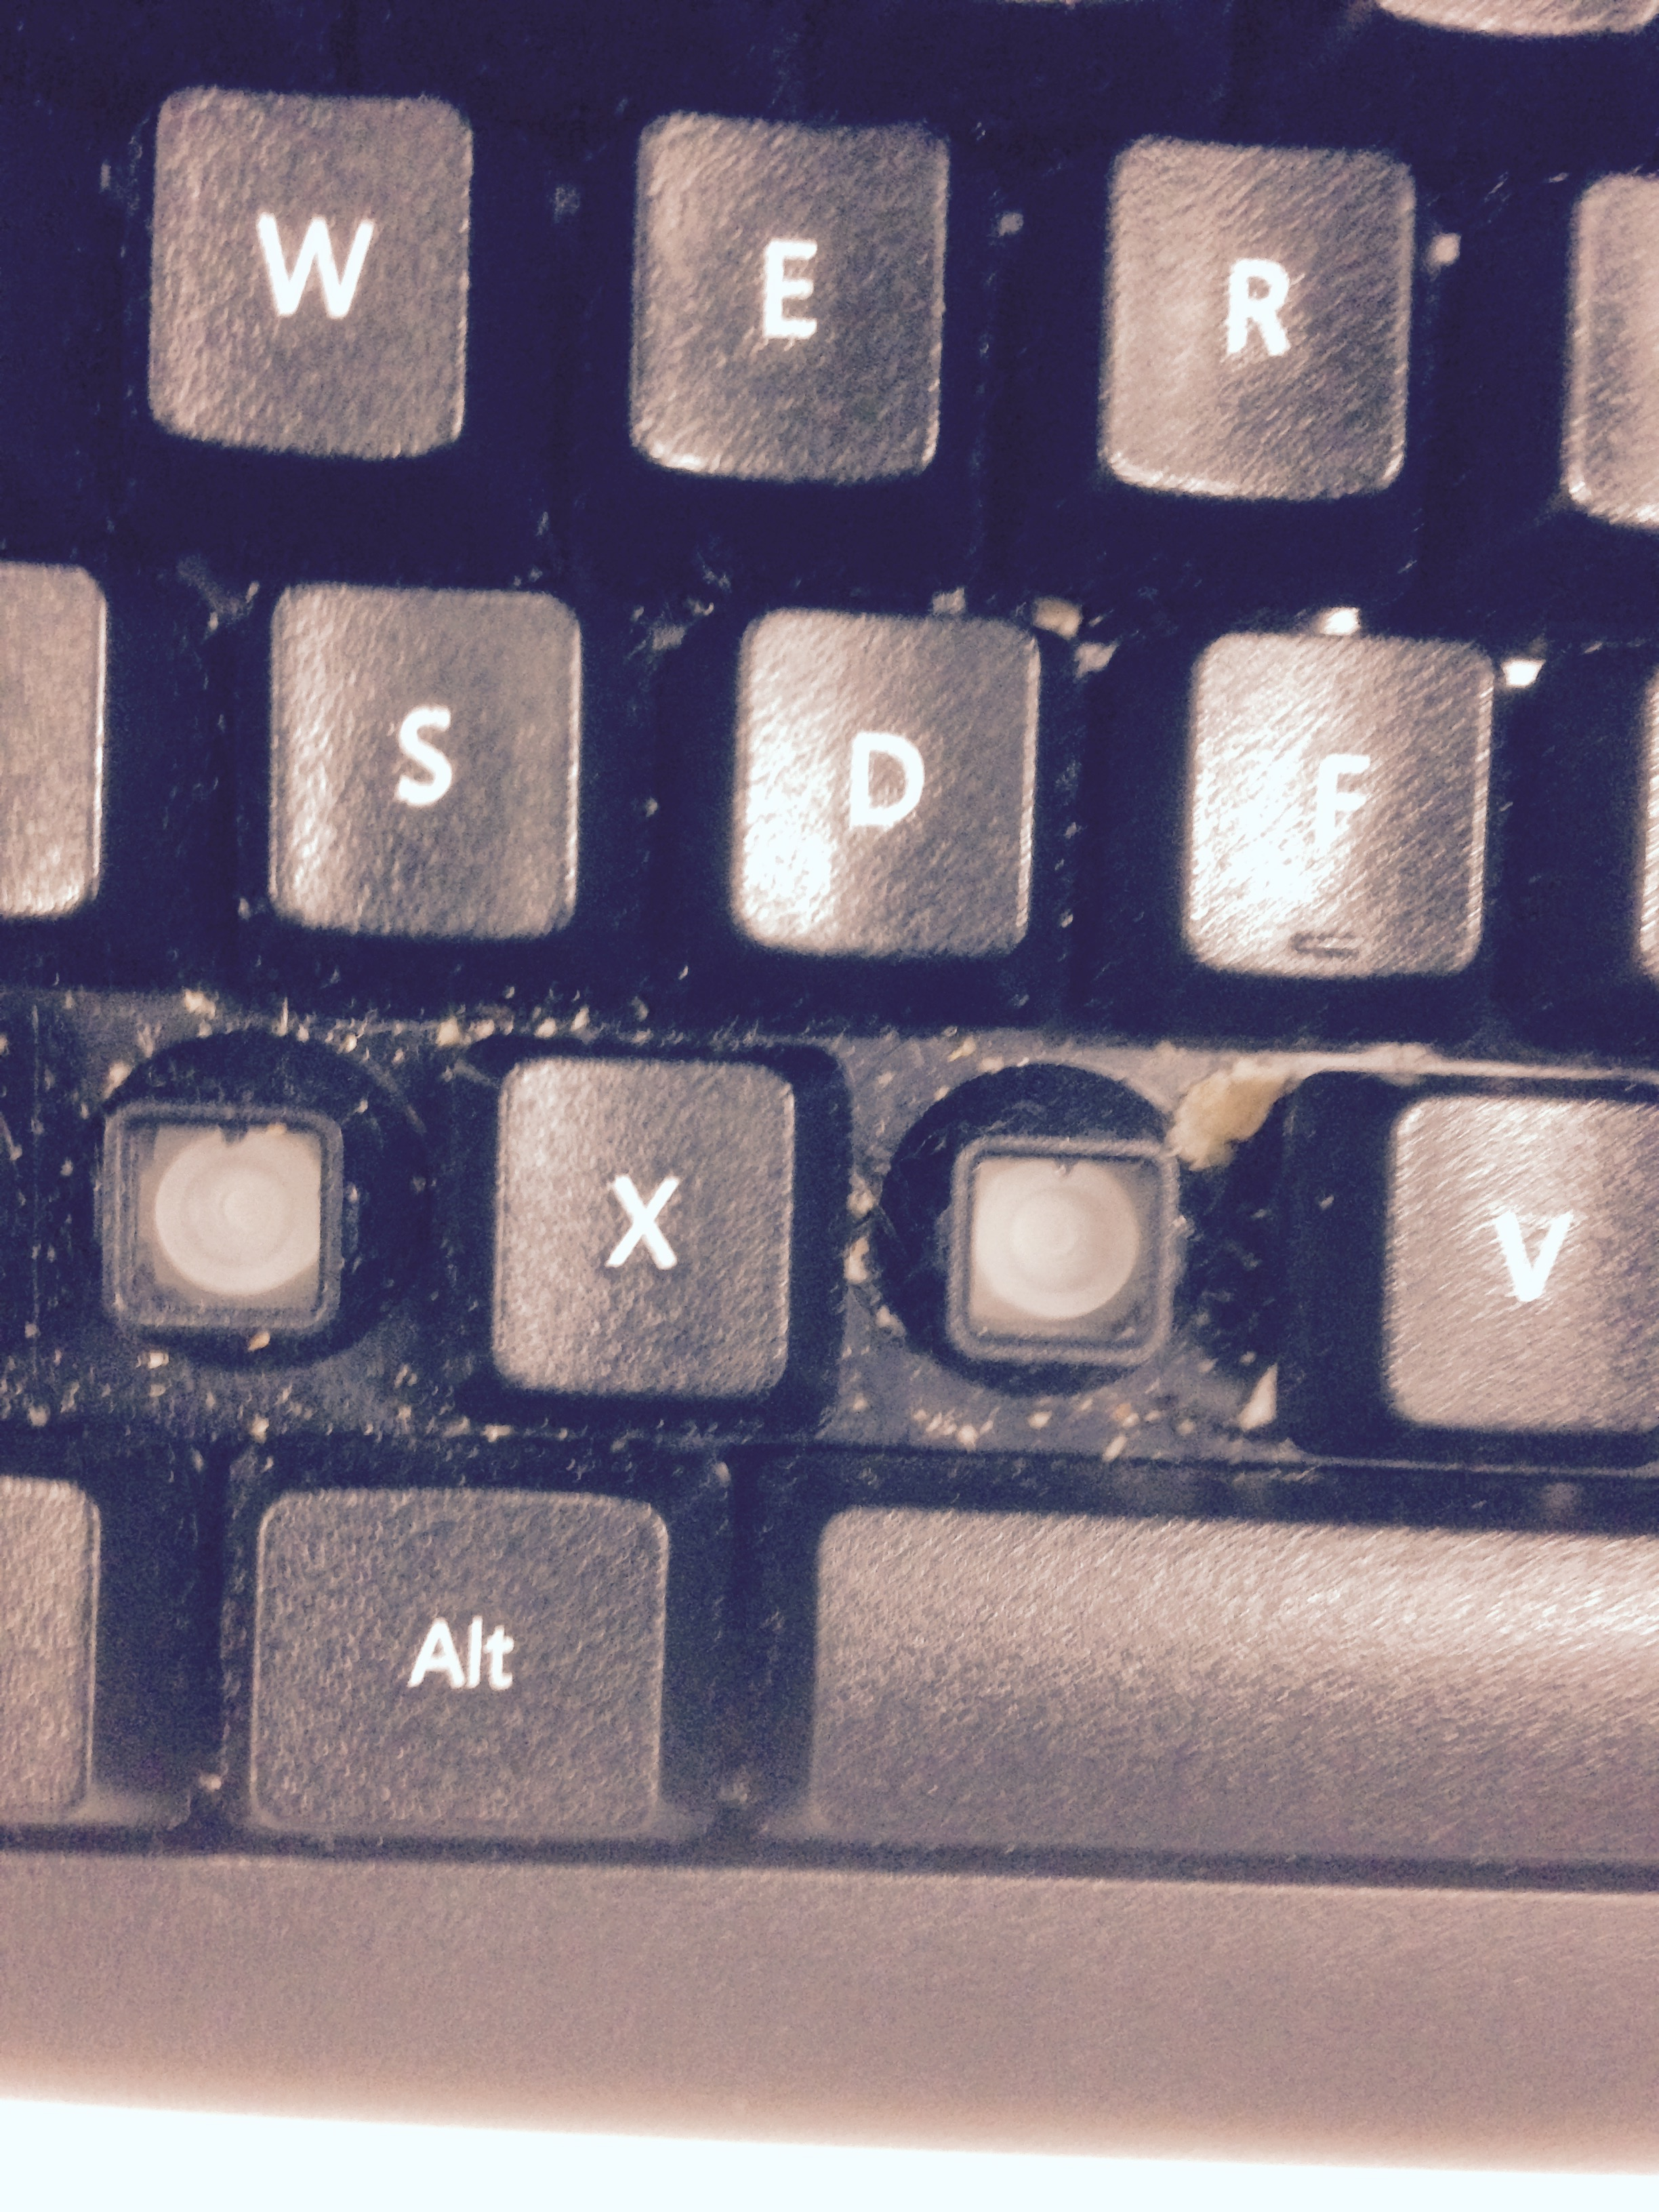 Dirty Keyboard Before Computer Cleaning Service